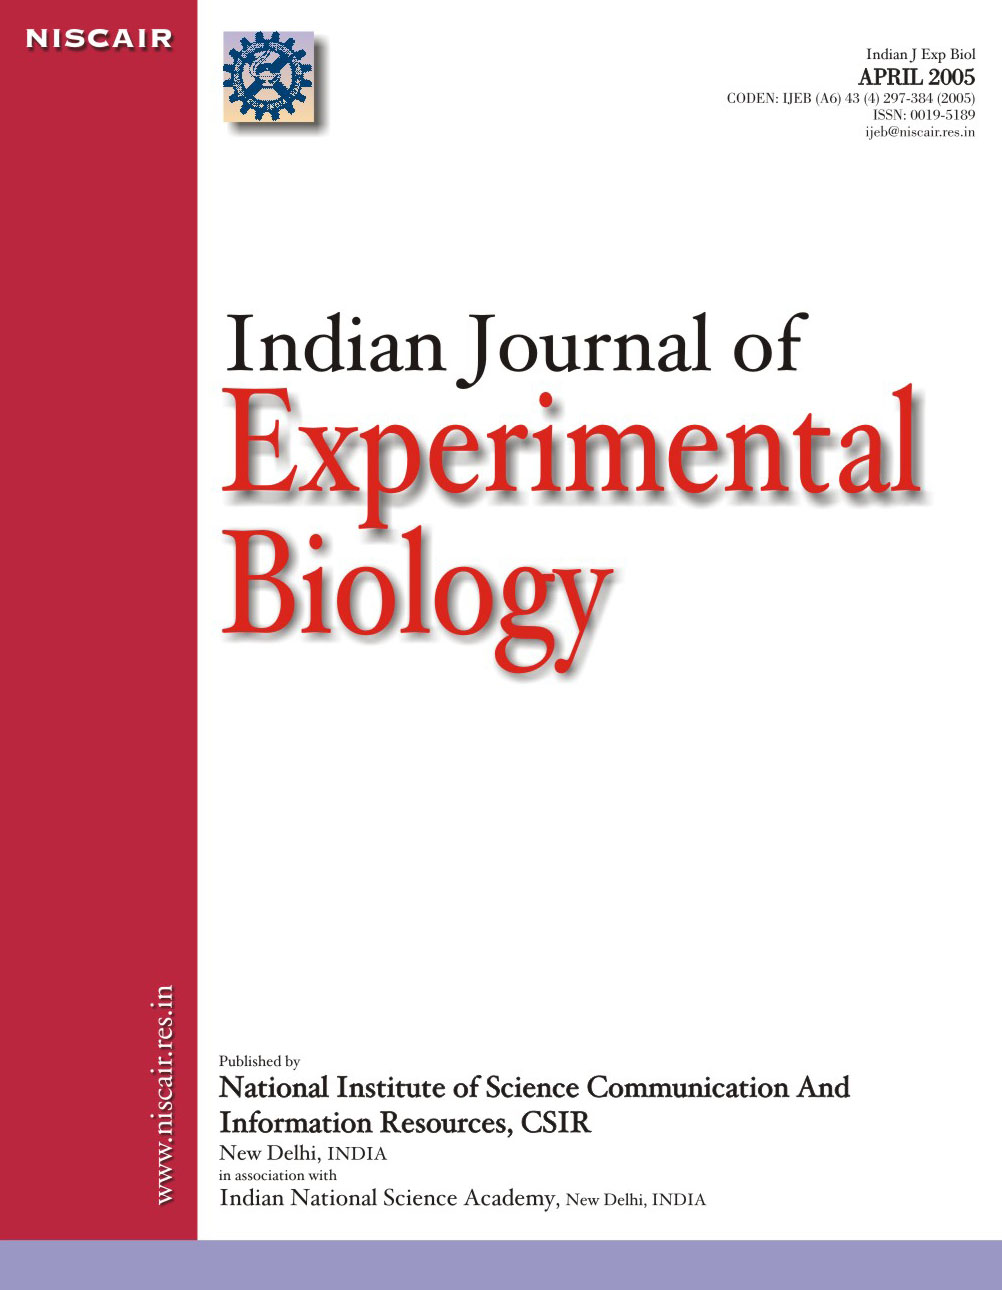 Biology research articles 2013